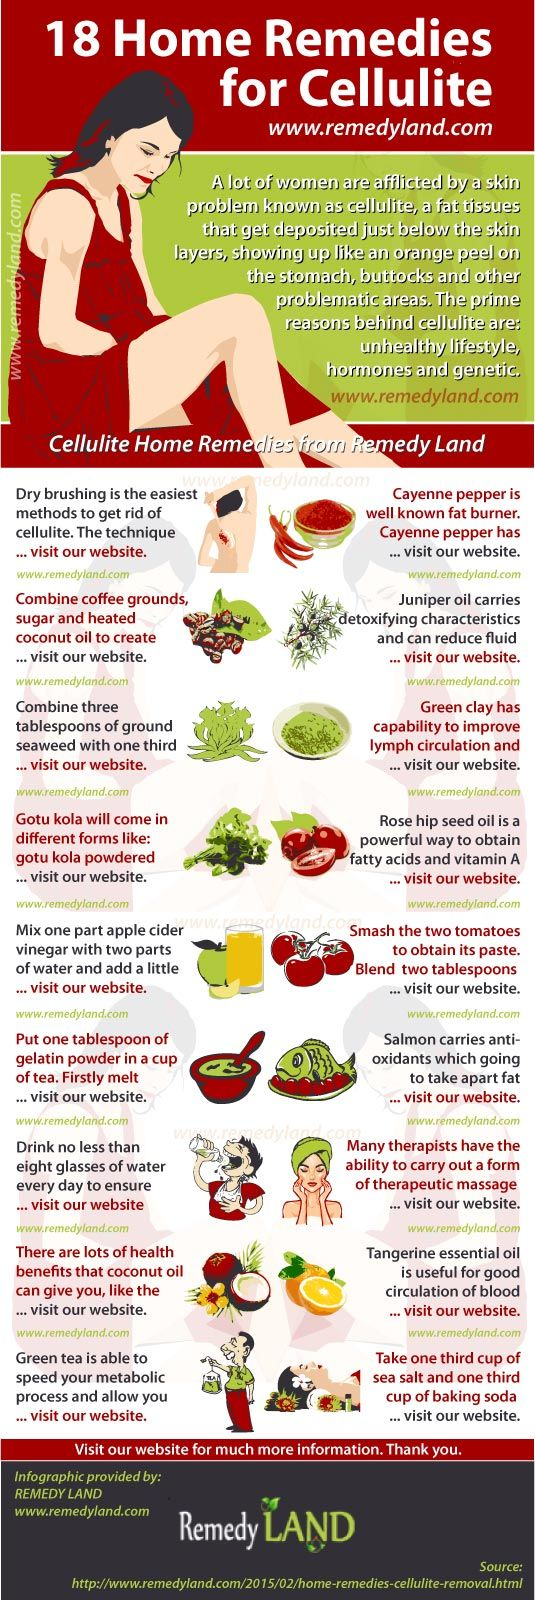 Collection of 18 home remedies for cellulite removal, or tips how to get rid of cellulite at home with natural remedies.